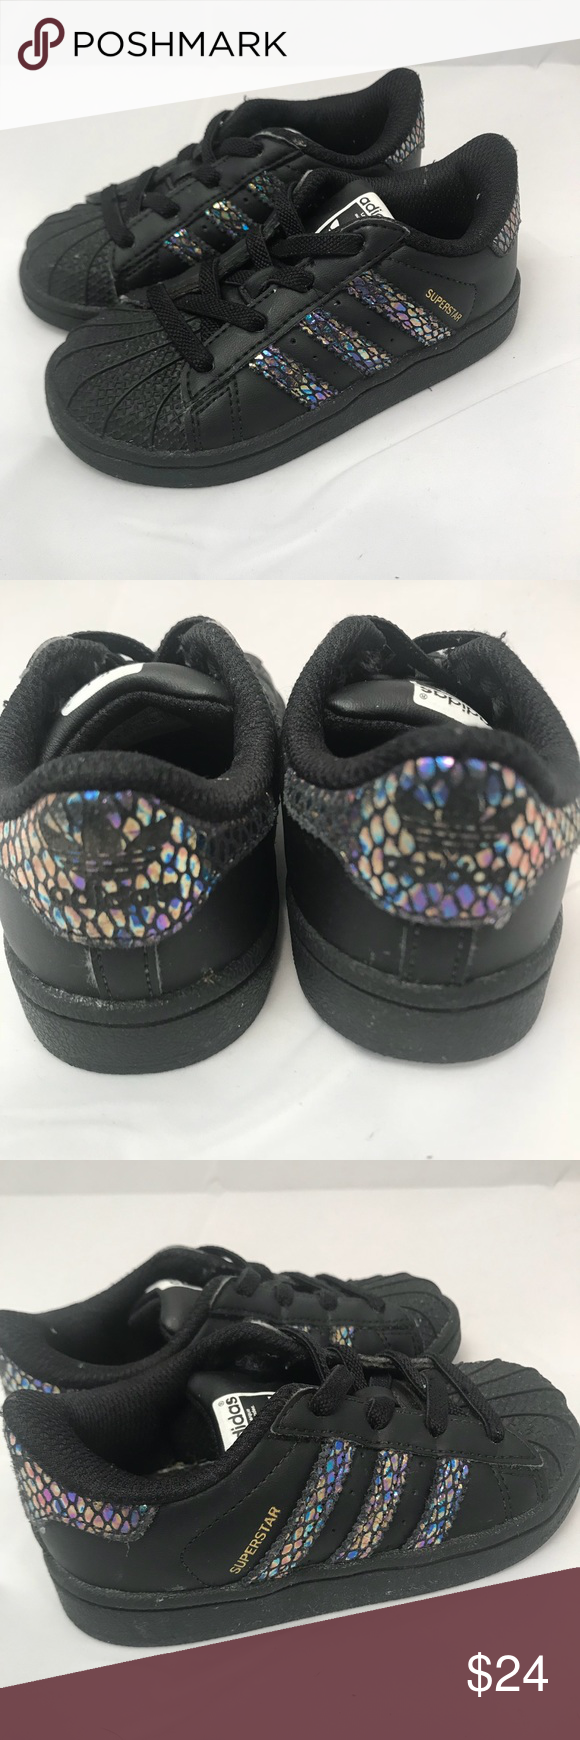 buy popular d262c a6371 ADIDAS Superstar Toddler Shoes Sneakers Black 7K ADIDAS Superstar Gym Shoes  Black Glitter Accent Slip On Trefoil Logo Very Good Condition Size  7K  adidas ...